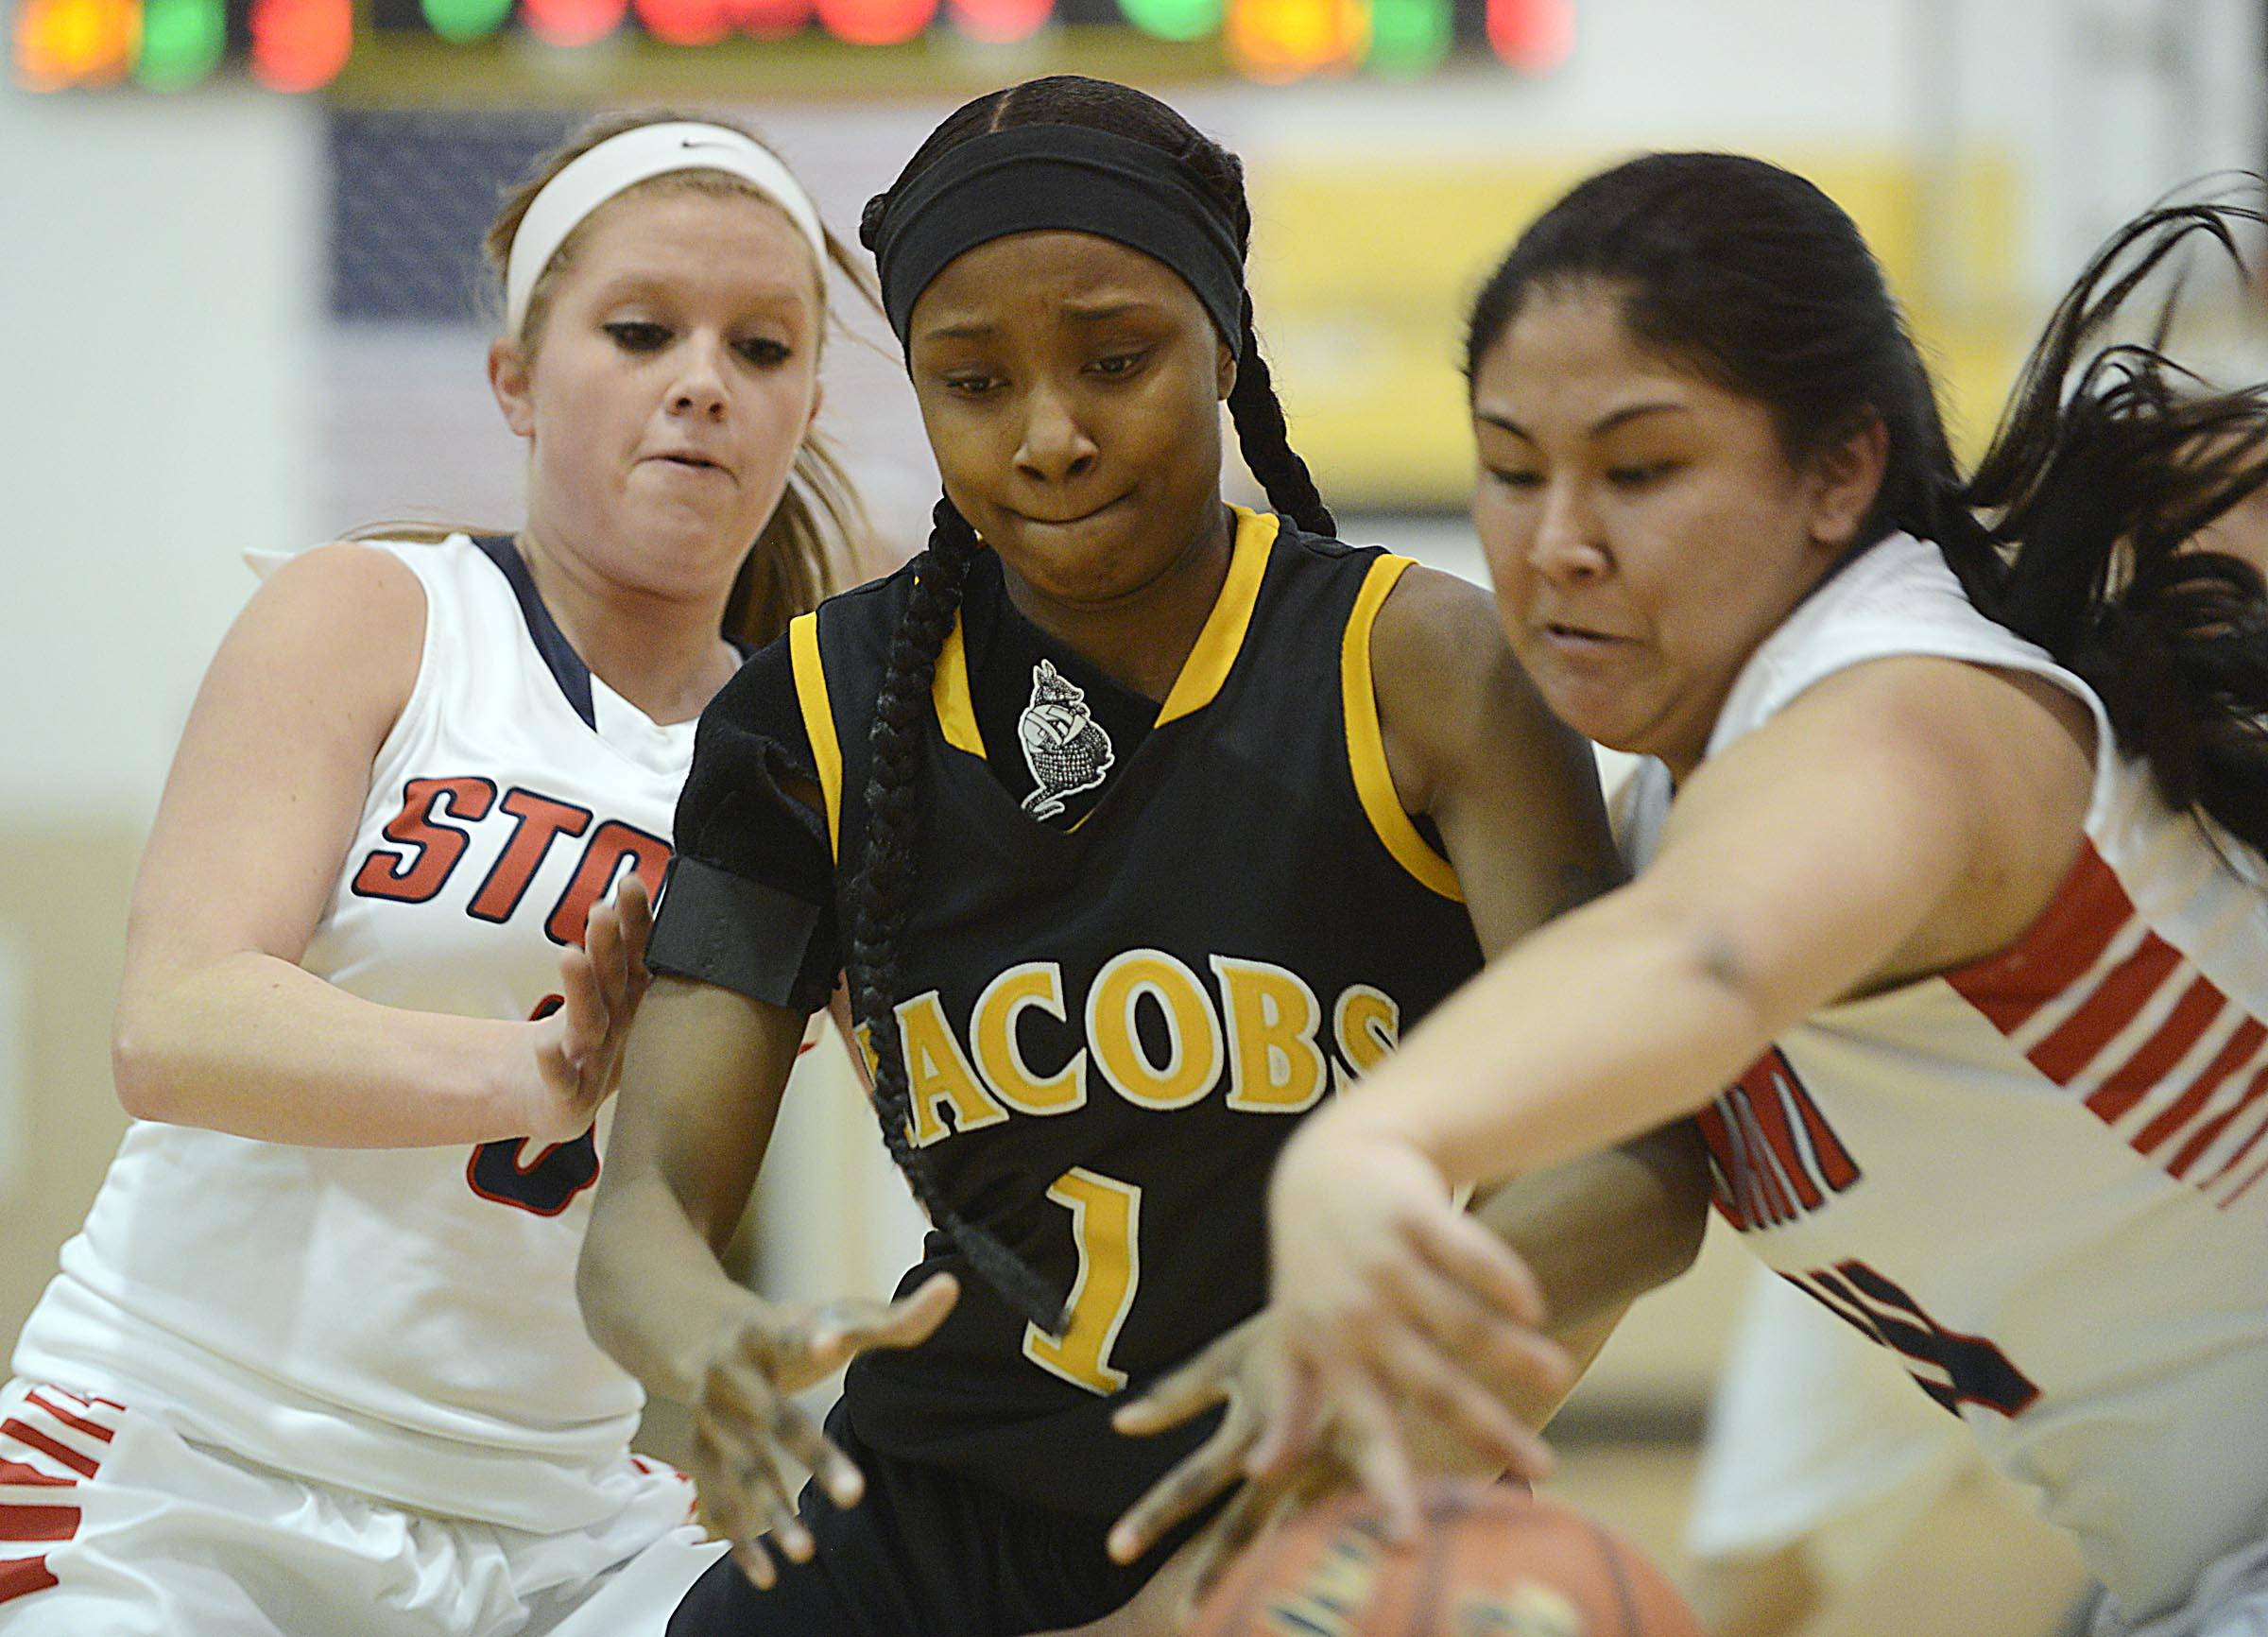 South Elgin's Nadia Yang steals a pass for Jacobs' Glenita Williams. At left is South Elgin's Mackie Kelleher.